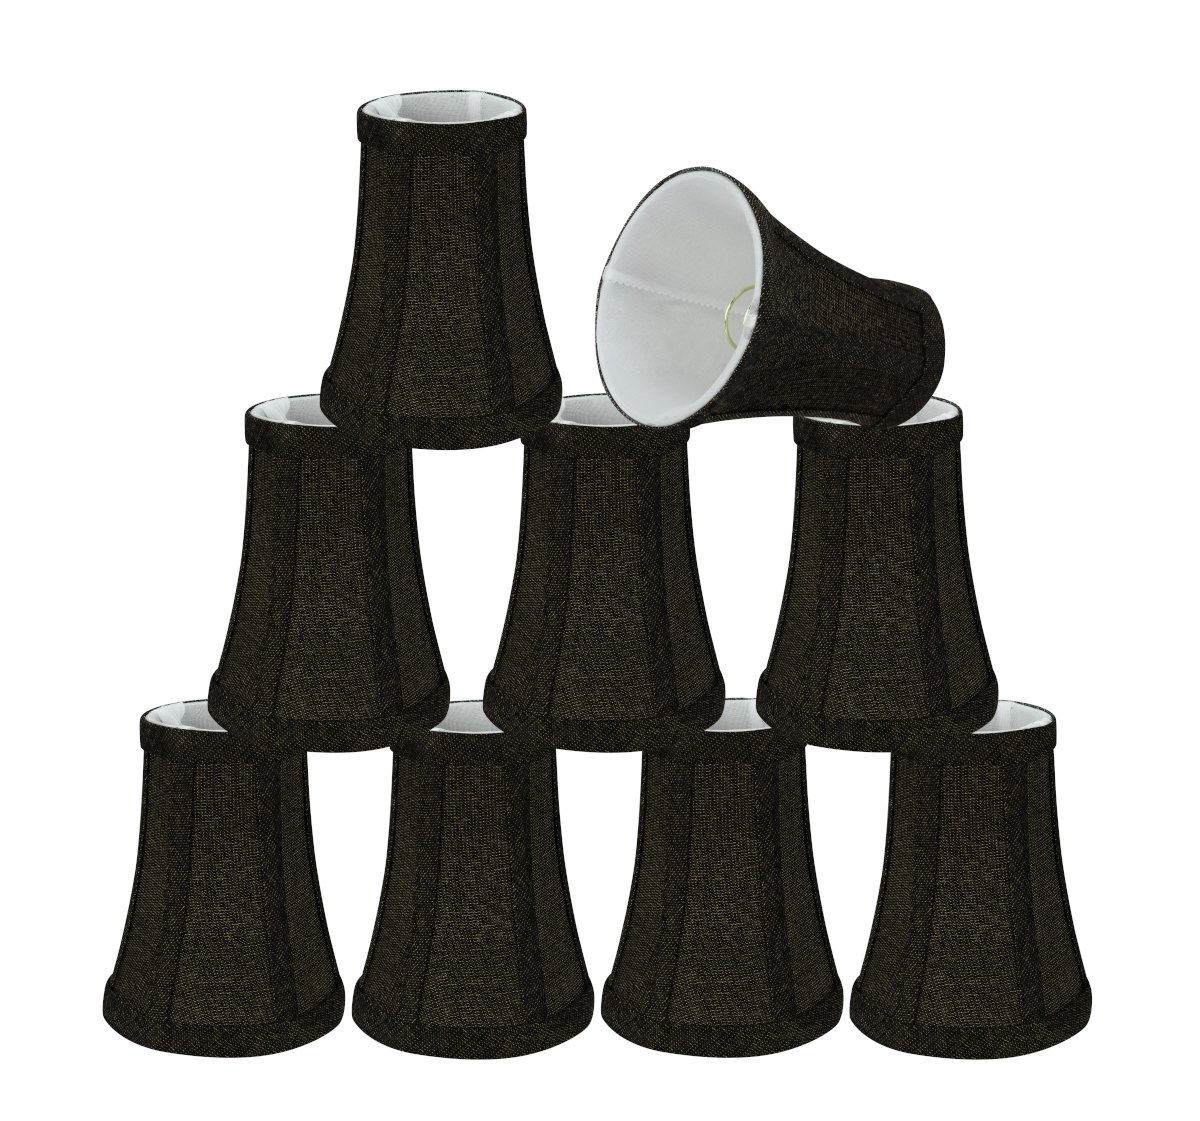 Aspen Creative 30248-9 Small Bell Shape Chandelier Set (9 Pack), Transitional Design in Two-Tone Black, 4' Bottom Width (2-1/2'x 4' x 5') Clip ON LAMP Shade 4 Bottom Width (2-1/2x 4 x 5) Clip ON LAMP Shade